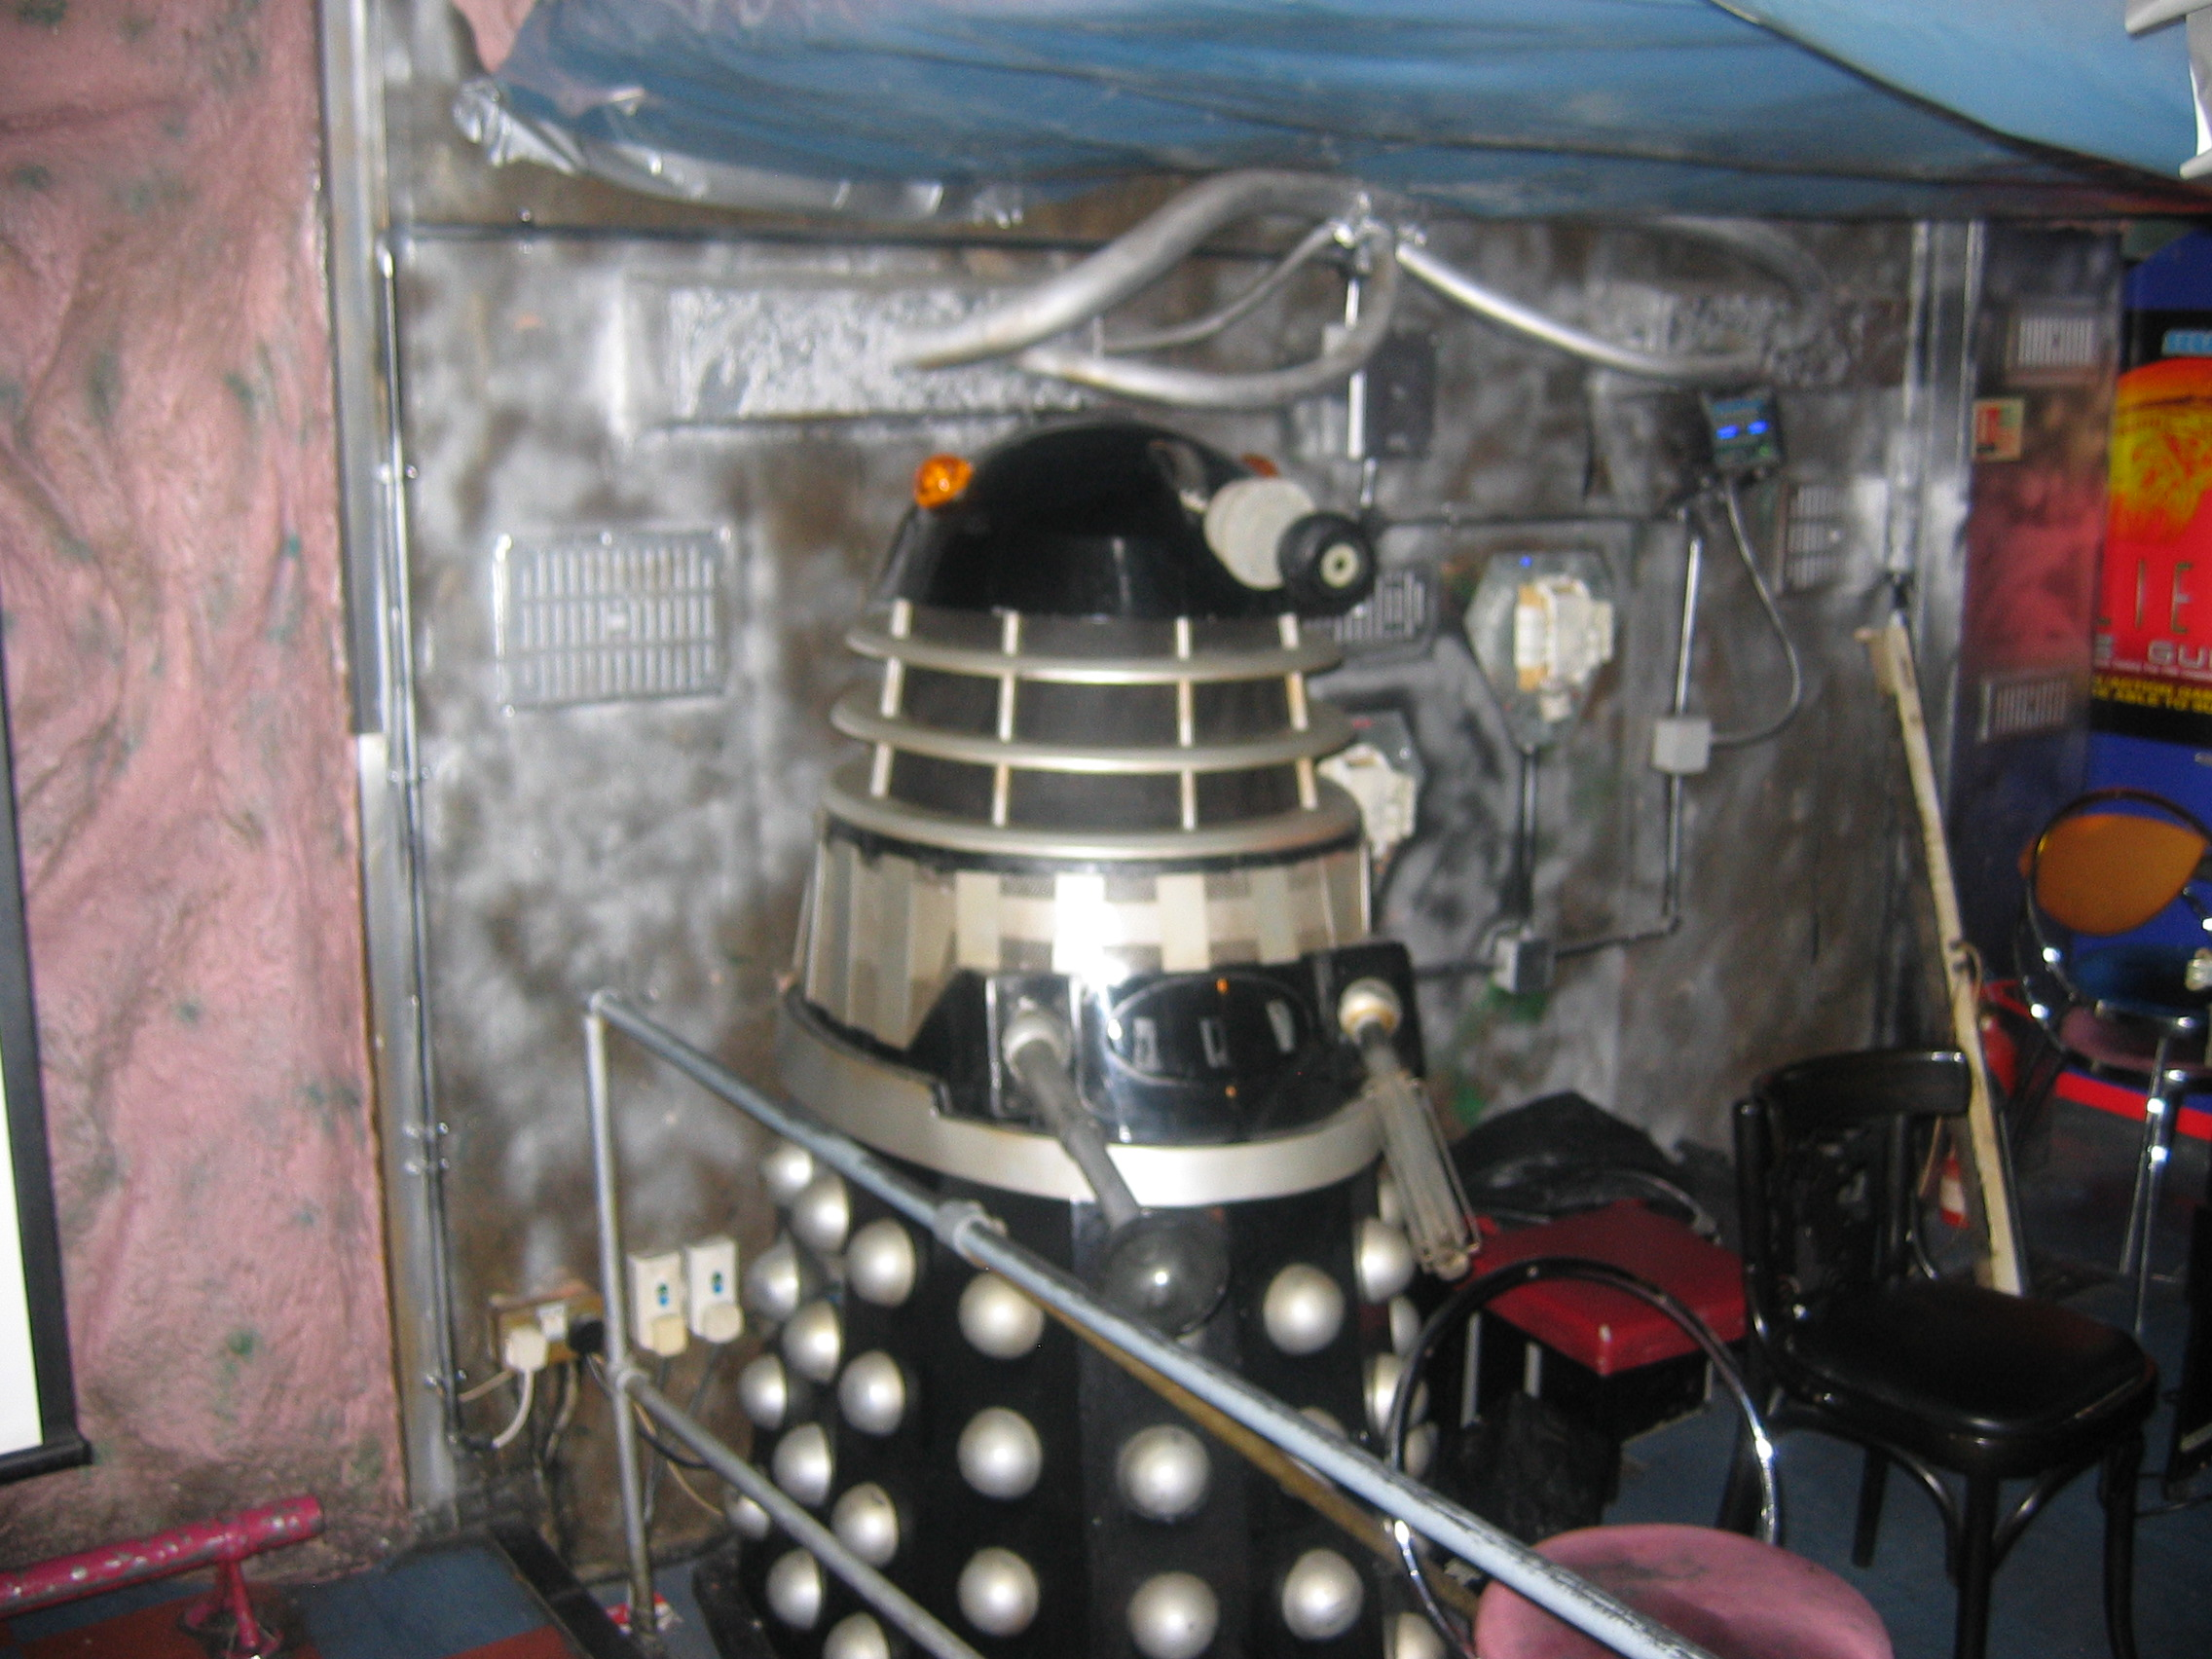 Photo taken by me – A Dalek displayed in FAB Café Manchester